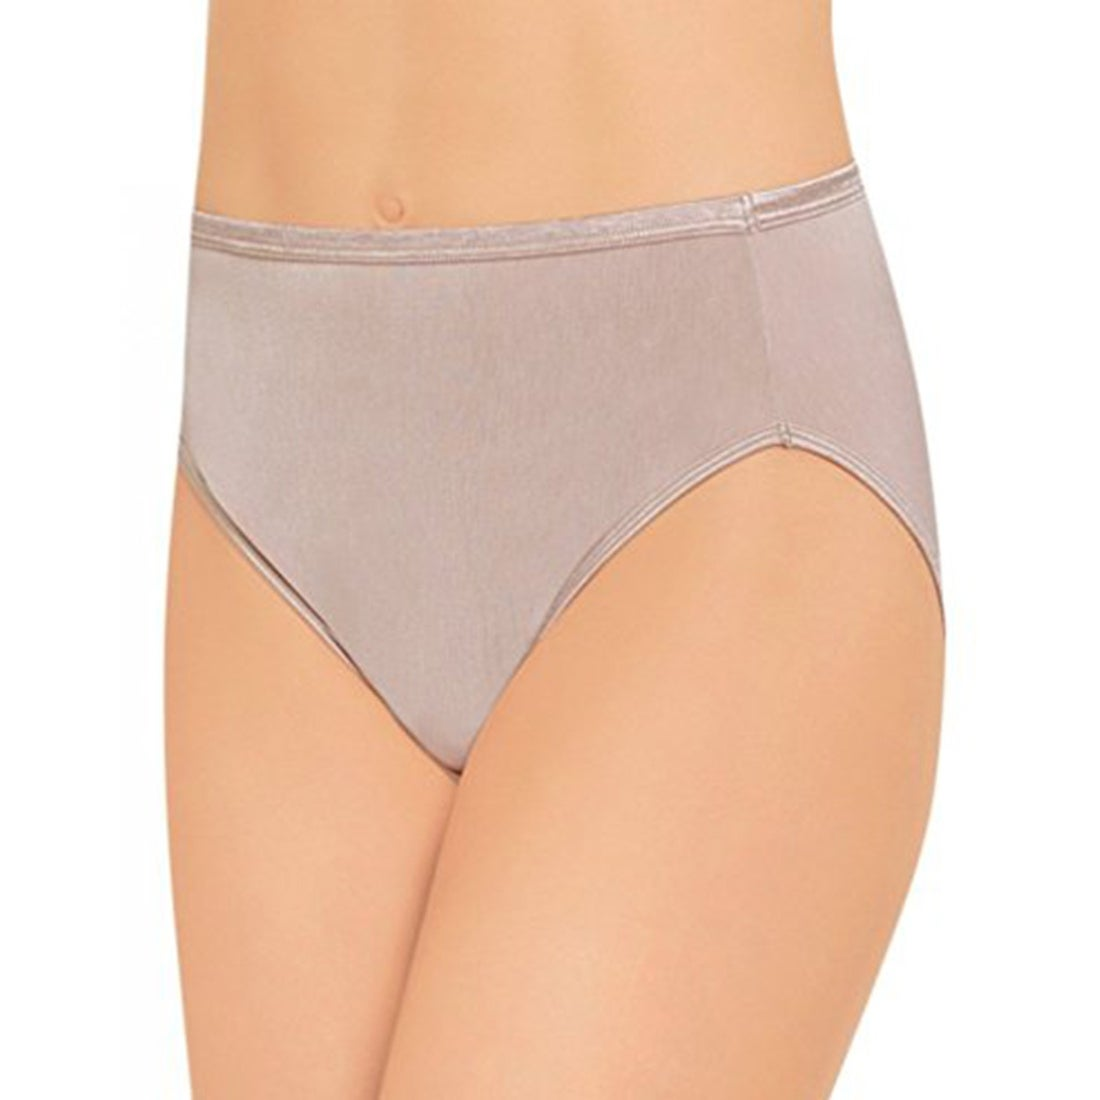 fd91acd33cf8df Shop Vanity Fair Women's illumination Hi Cut Panty 13108 - Free Shipping On  Orders Over $45 - Overstock - 20879171